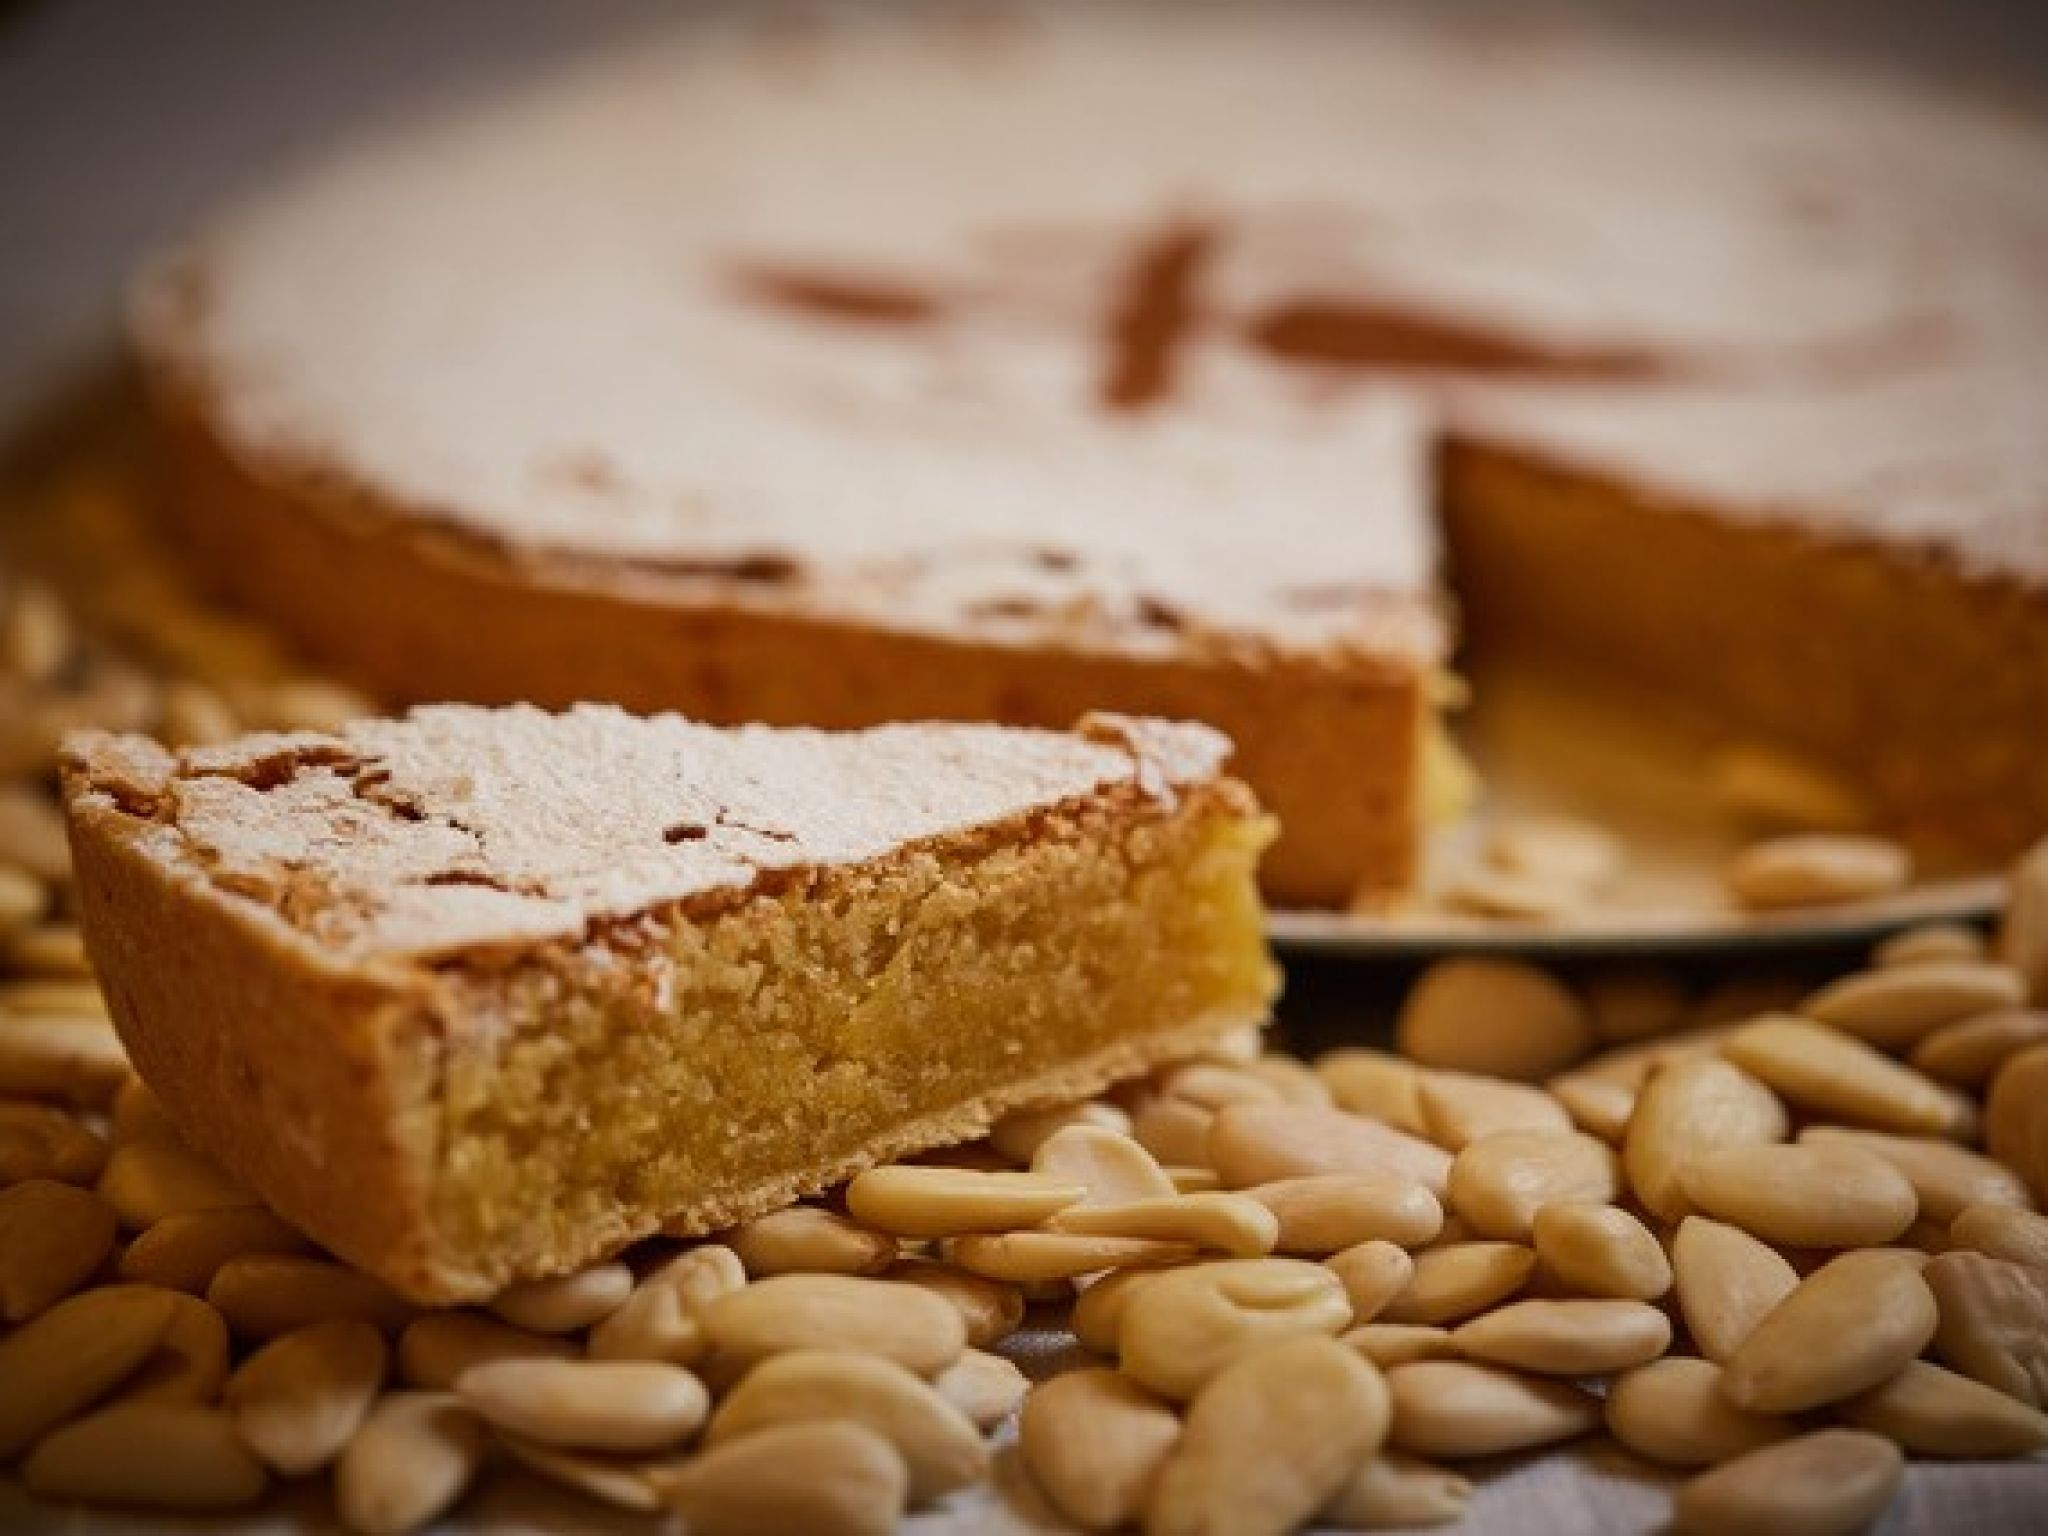 The authentic St. James Almond Cake (750g)